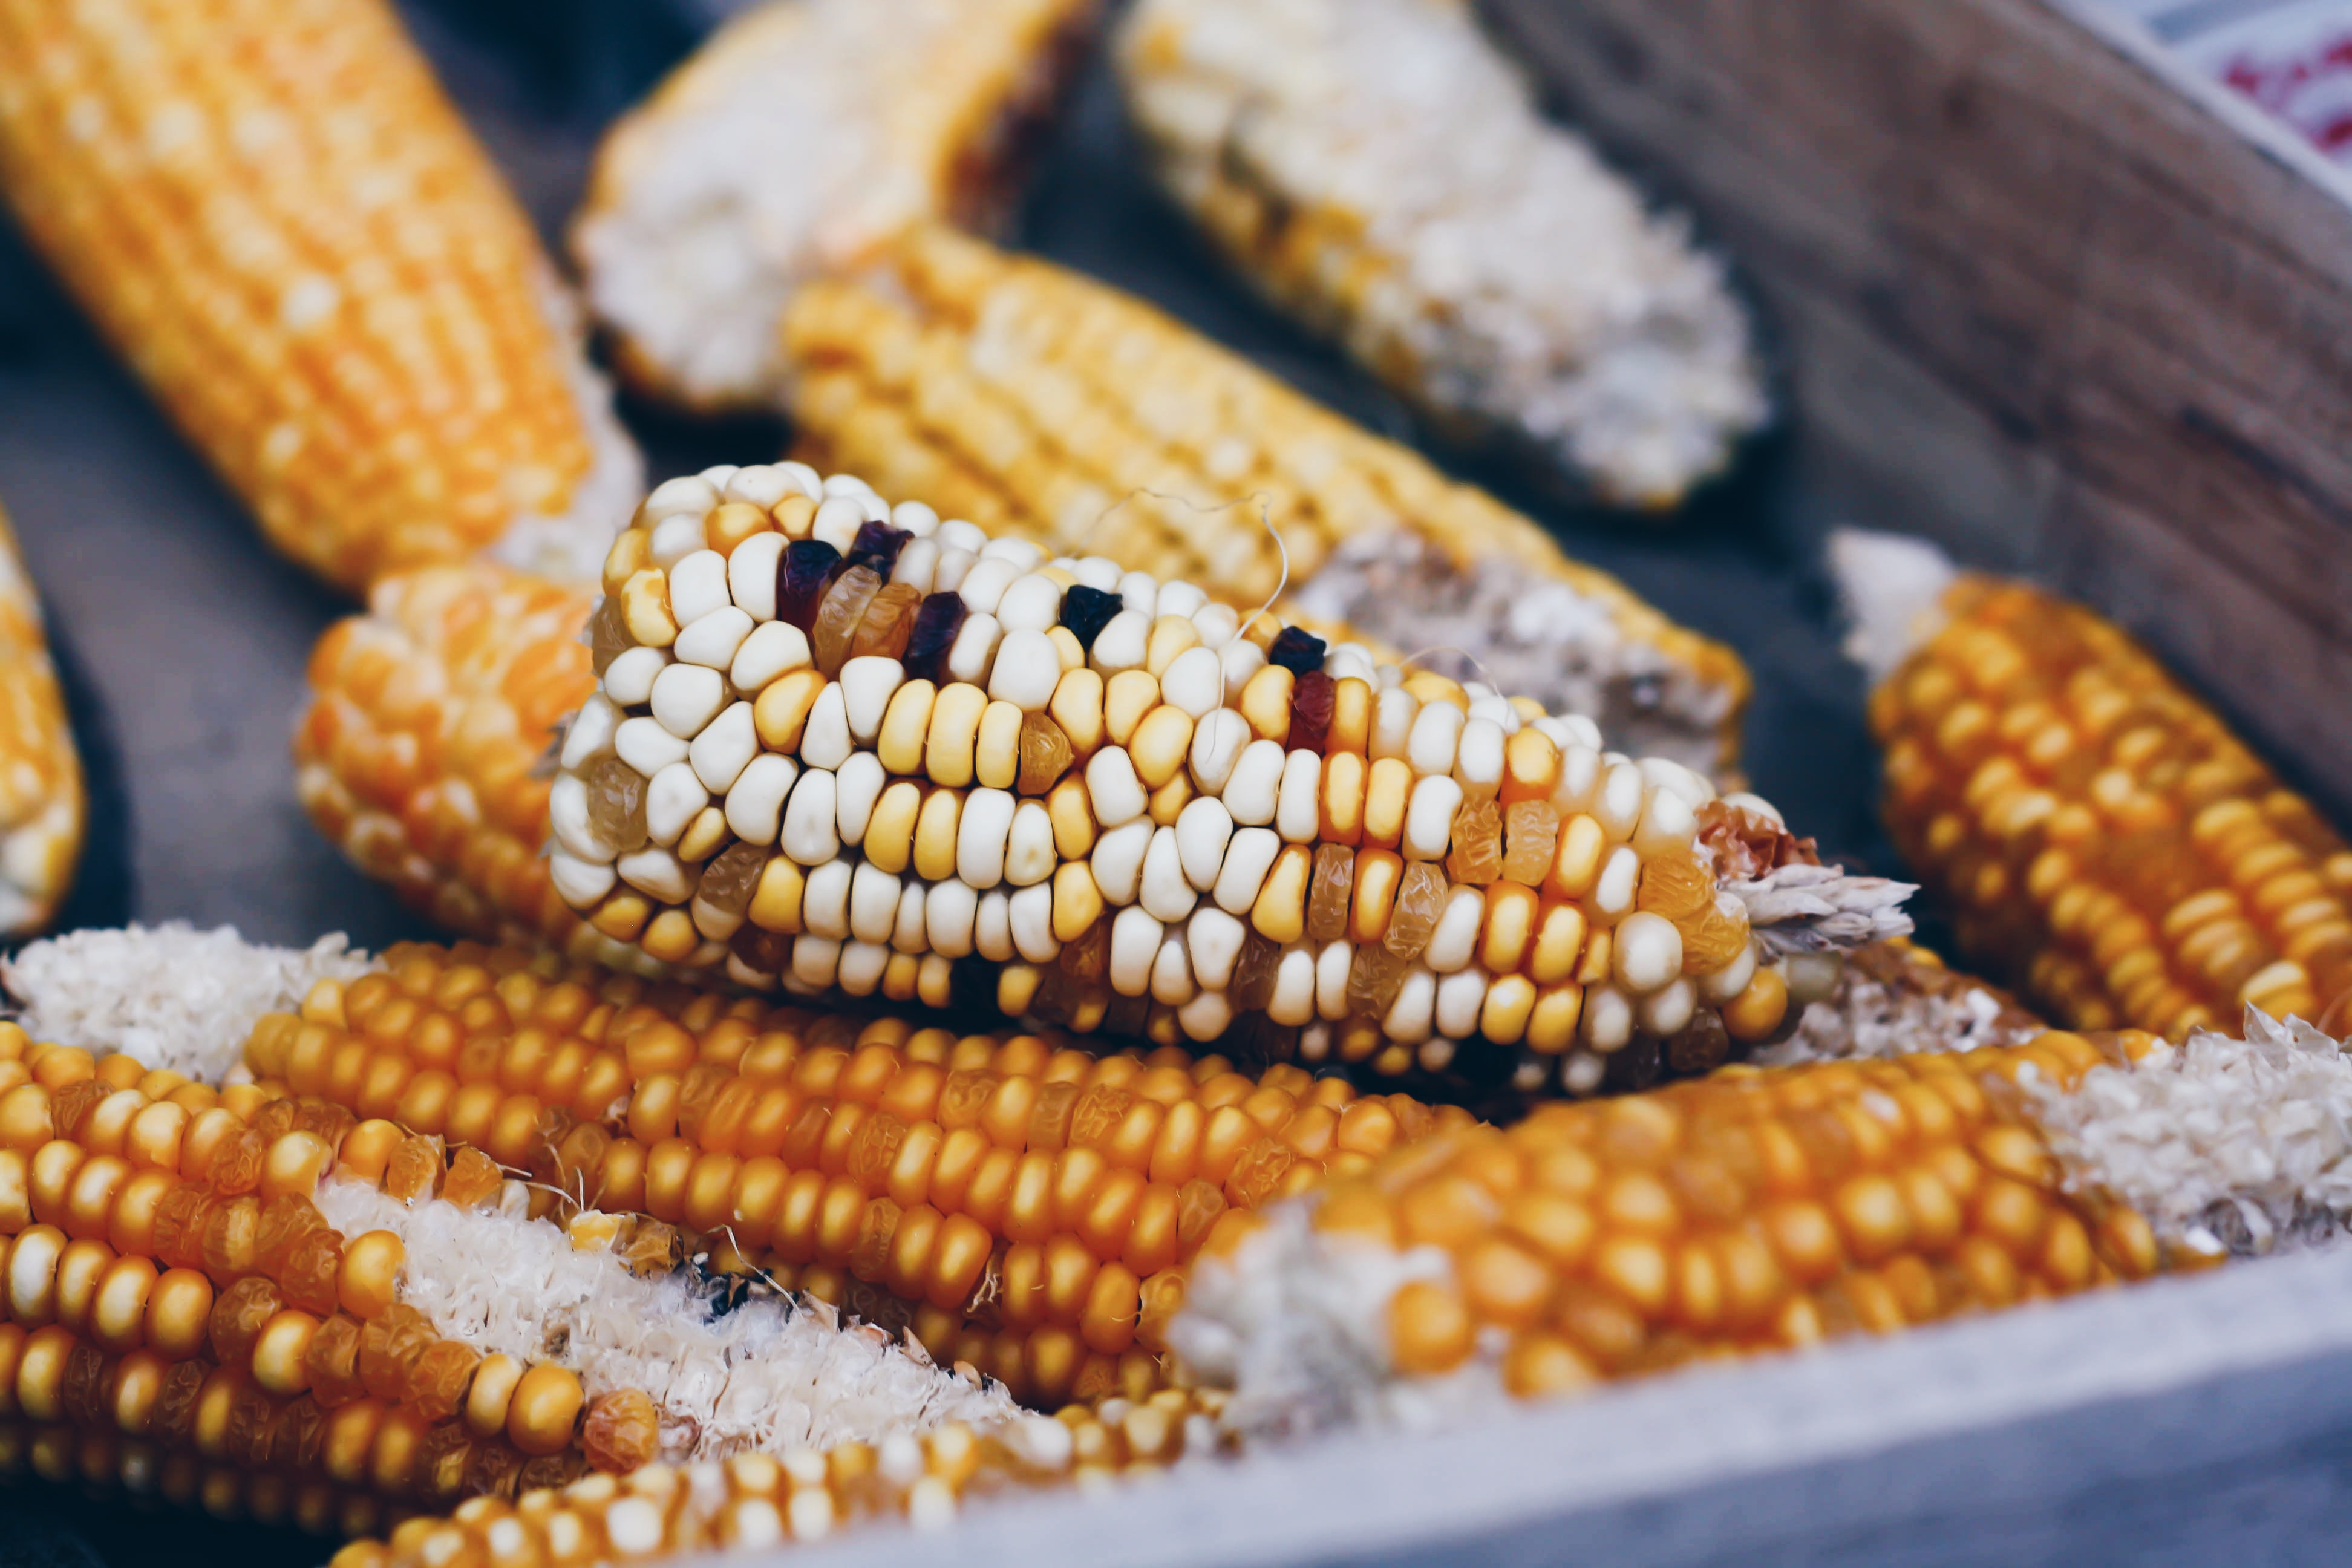 A batch of sweetcorn cobs in a wooden drawer